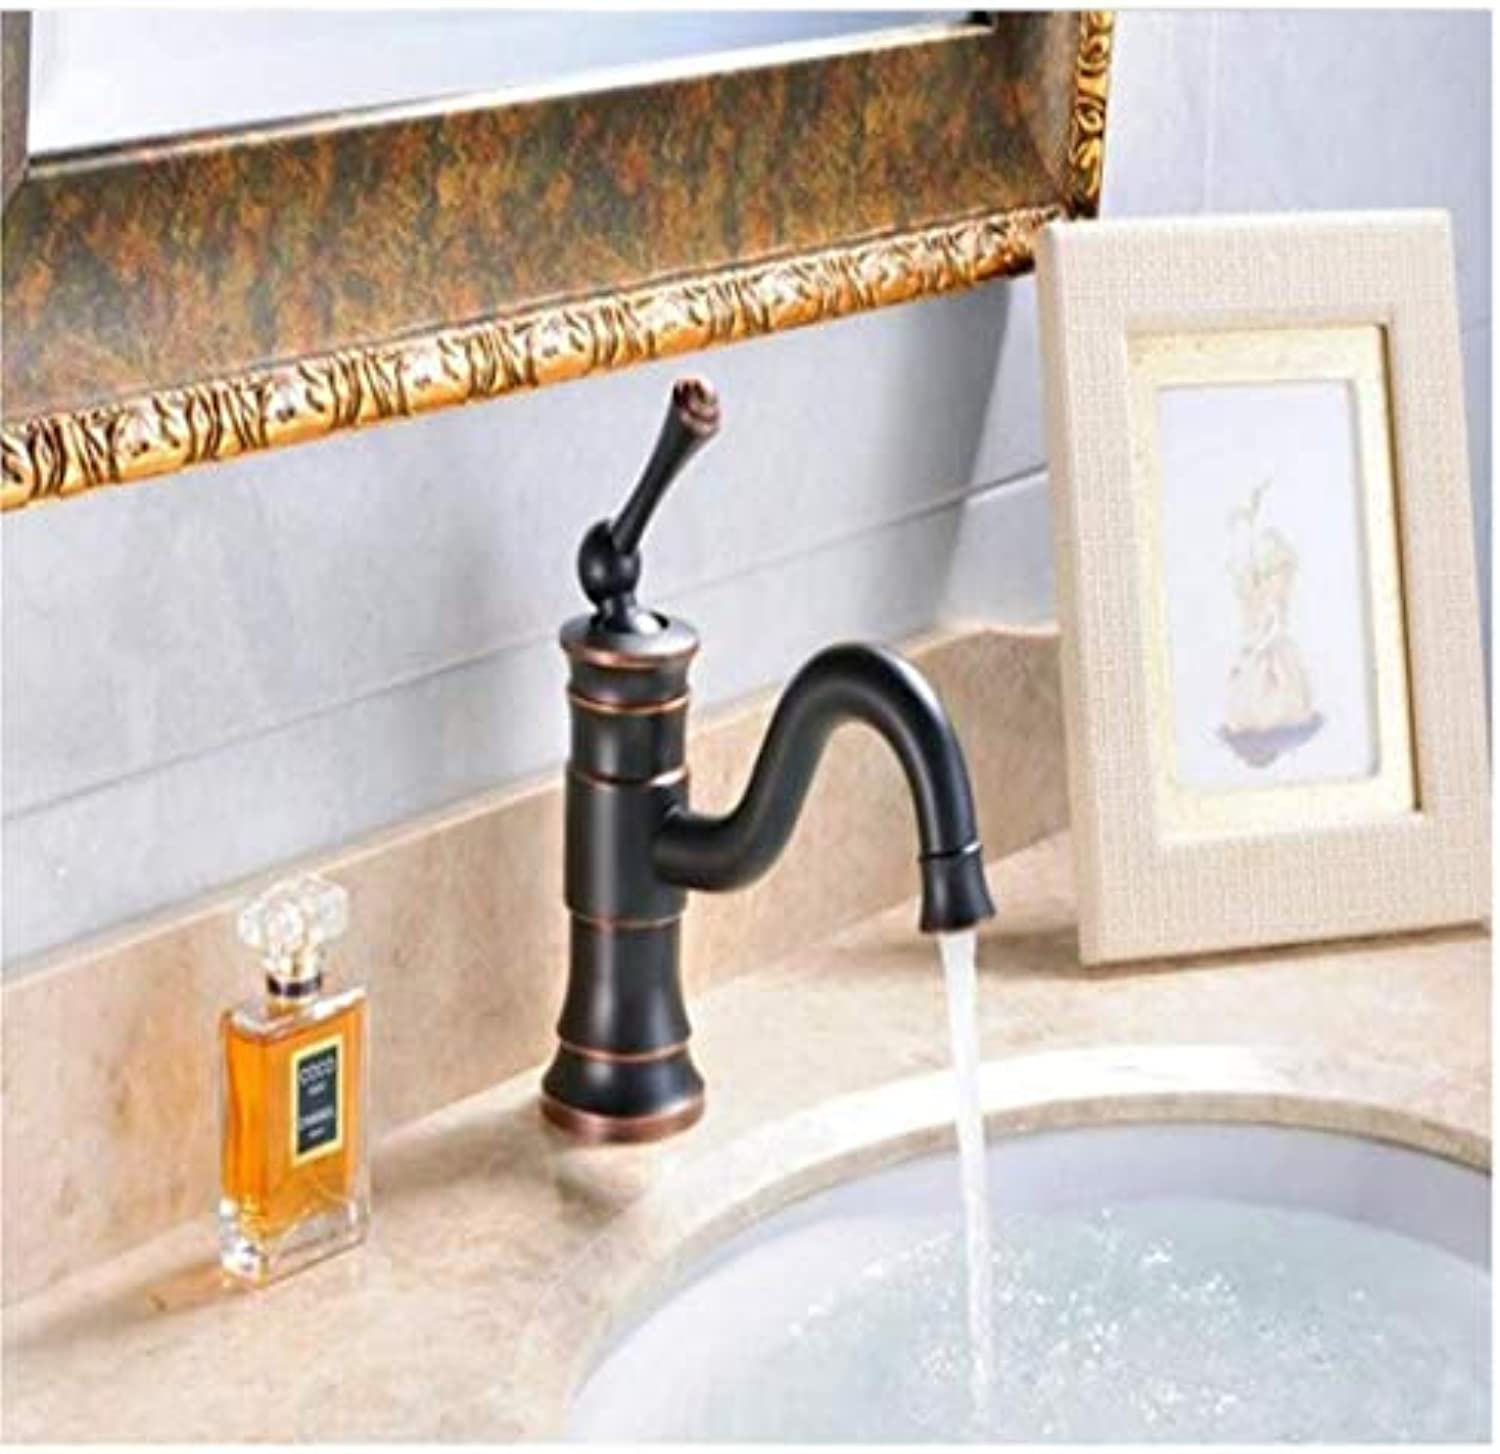 Vintage Brass Hot And Cold Water360 Degree Rotation Washbasin Design Oil Rubbed Bronze Bathroom Faucet Mixer Hot And Cold schwarz Water Taps For Basin Of Bathroom